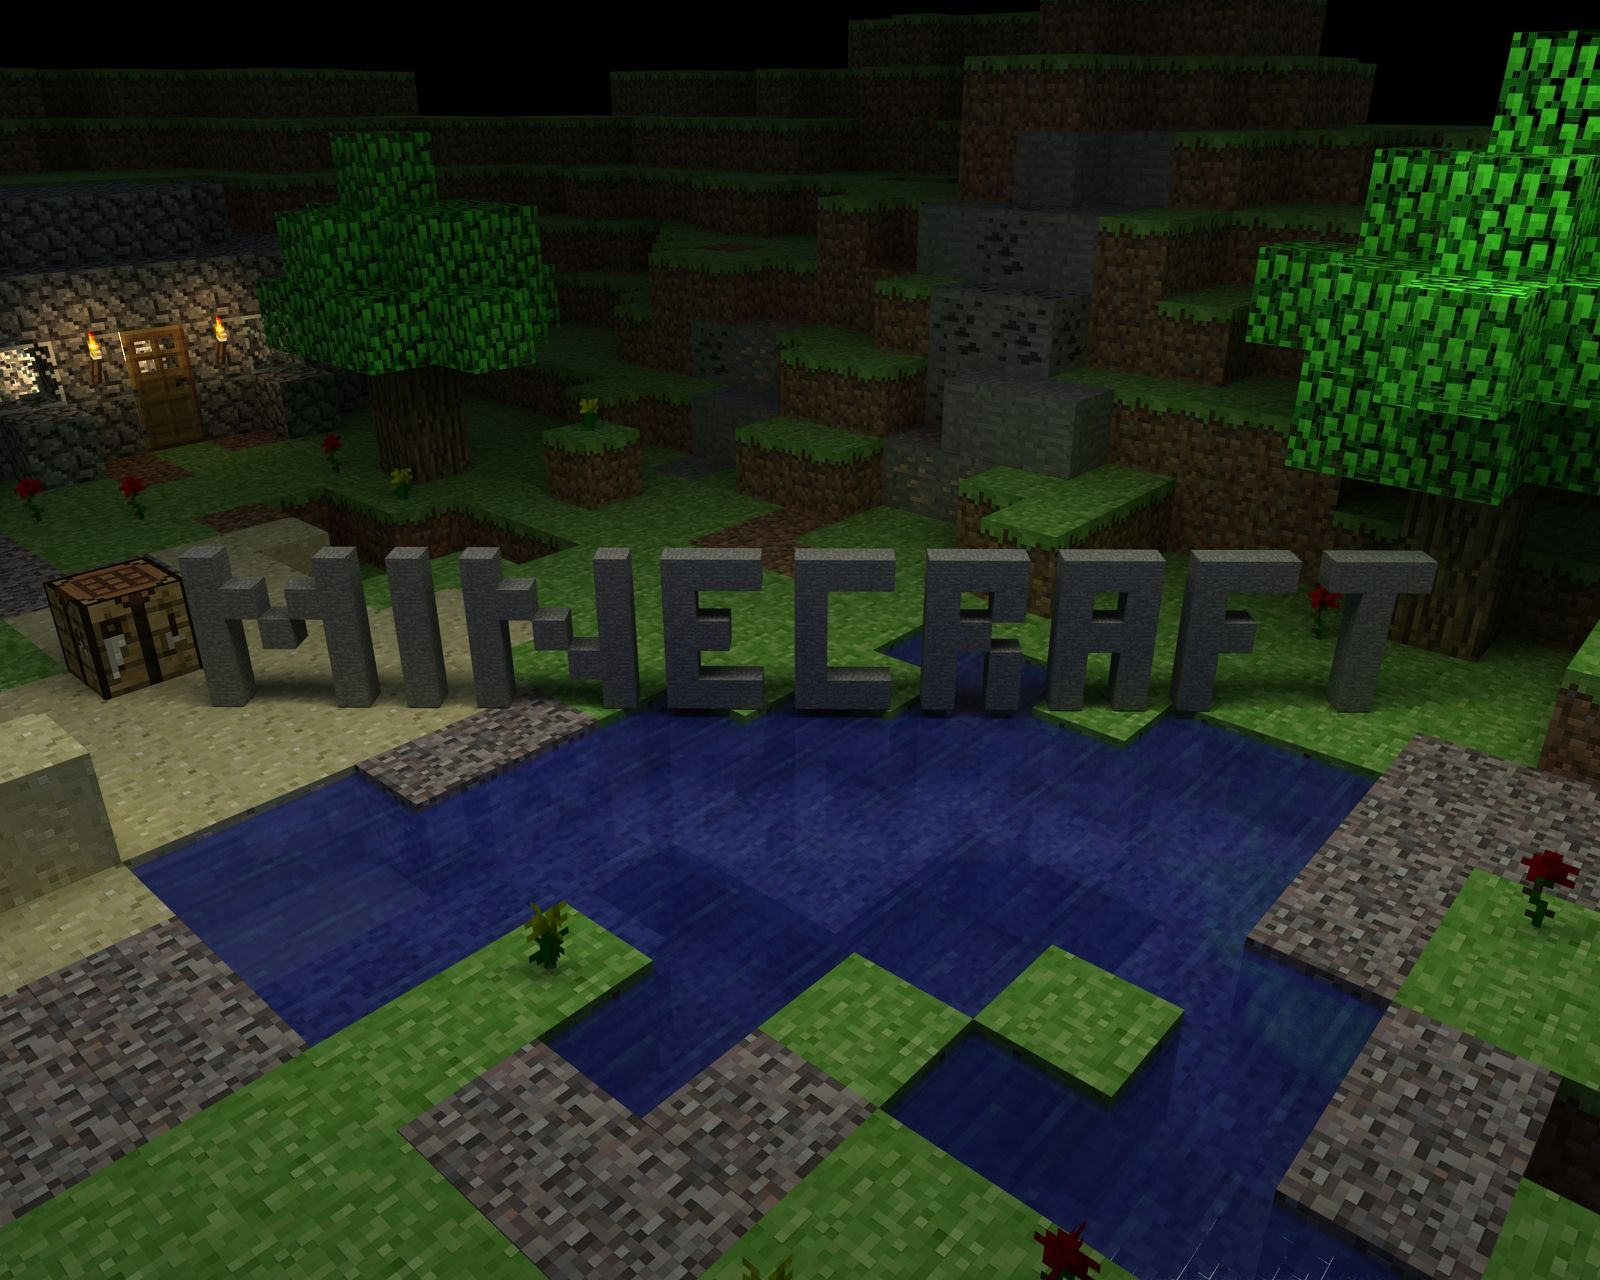 Cool Wallpaper Minecraft High Definition - 3d455a3c0c7de017ee30cb460dc0c5a5  Perfect Image Reference_172588.jpg